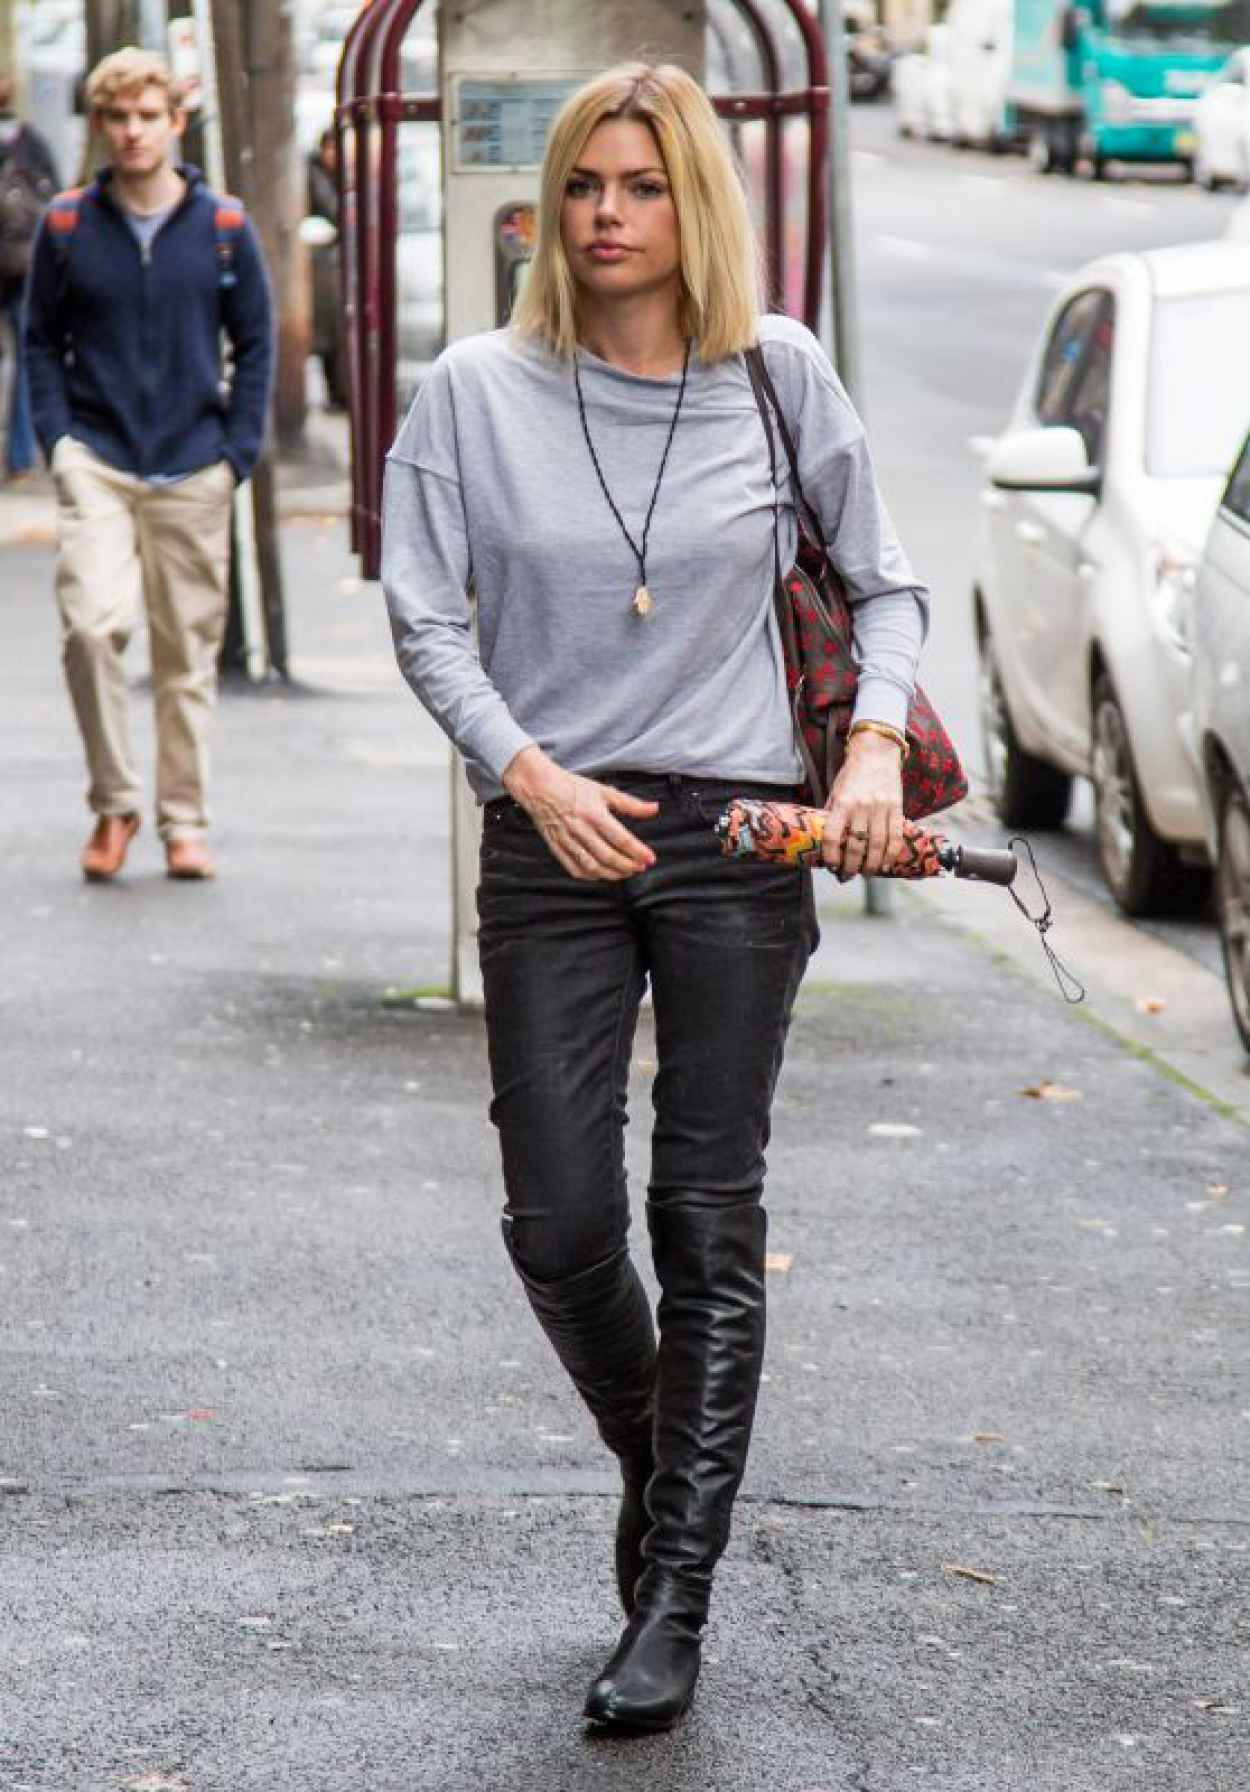 Sophie Monk Street Style - Rainy Day in Sydney, Australia, April 2015-1